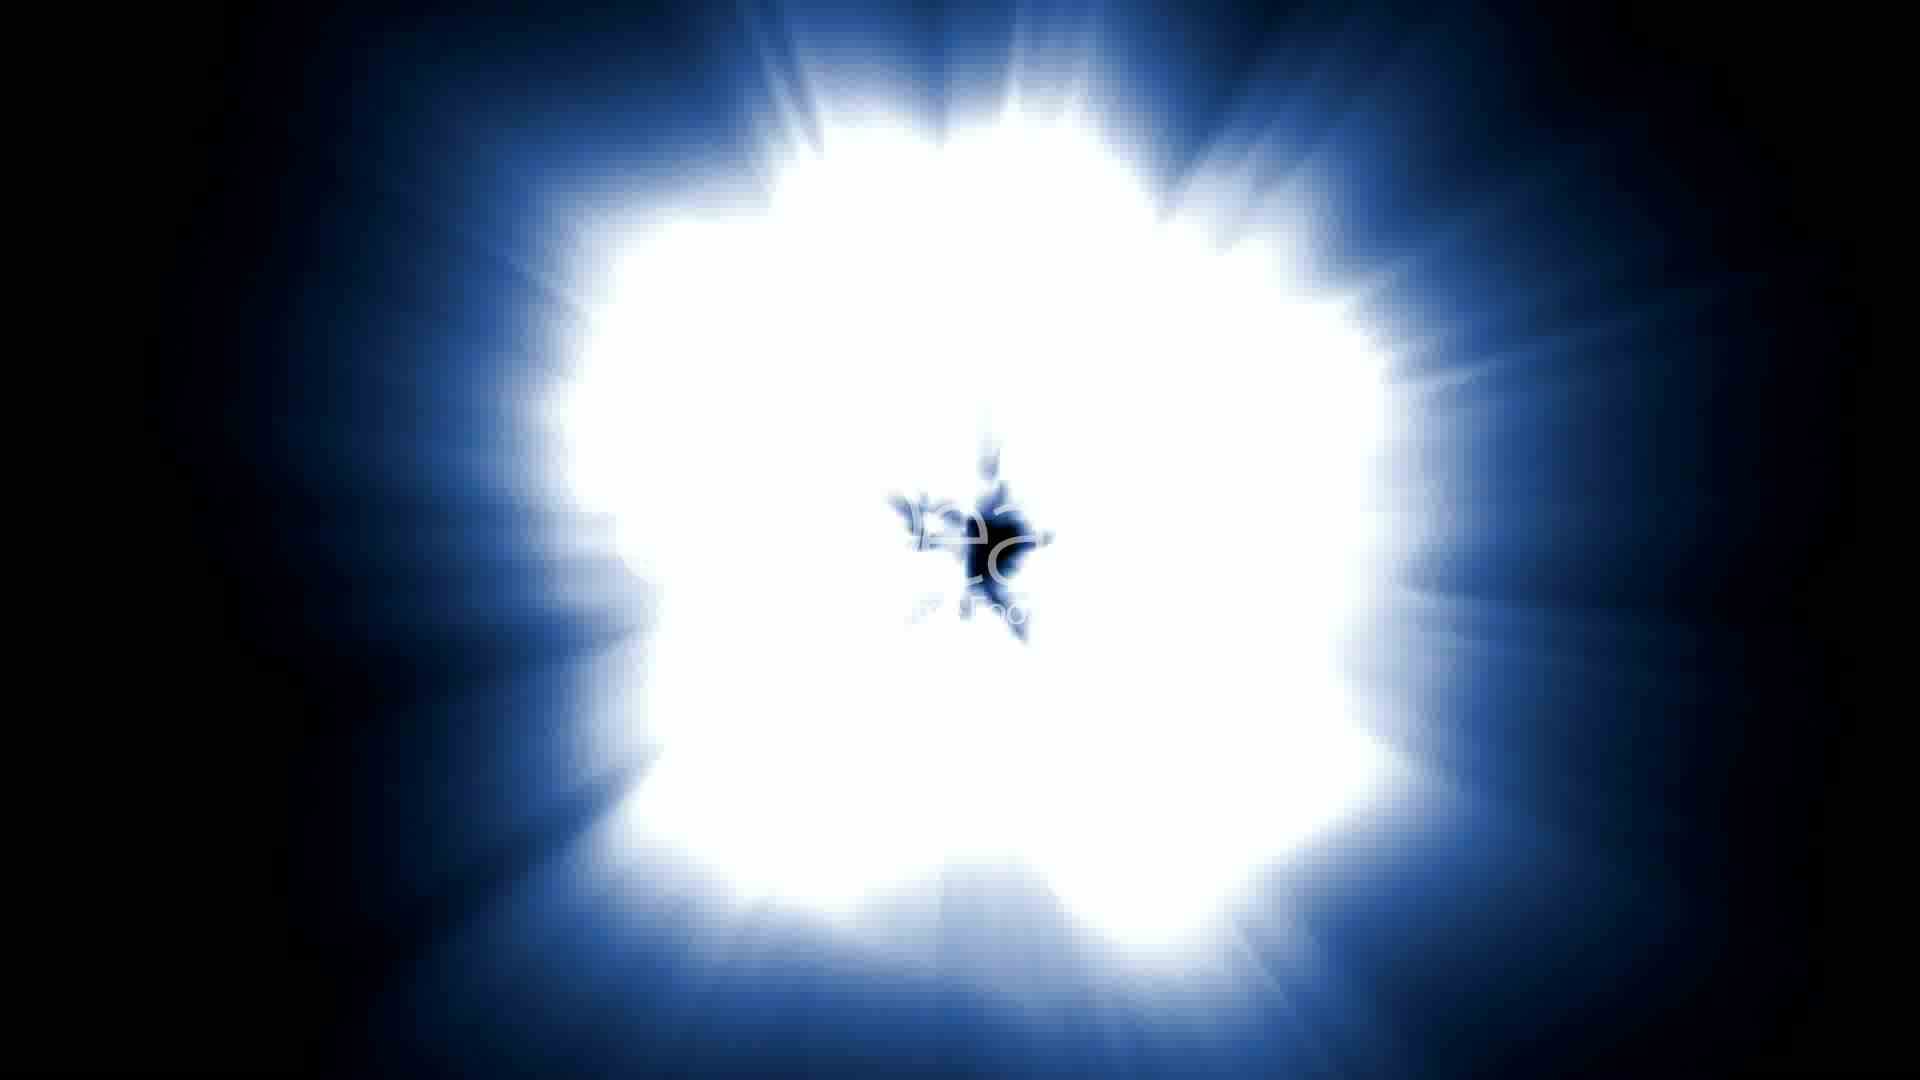 Led Solar Star Explosion,dazzling Light Generated By Nuclear